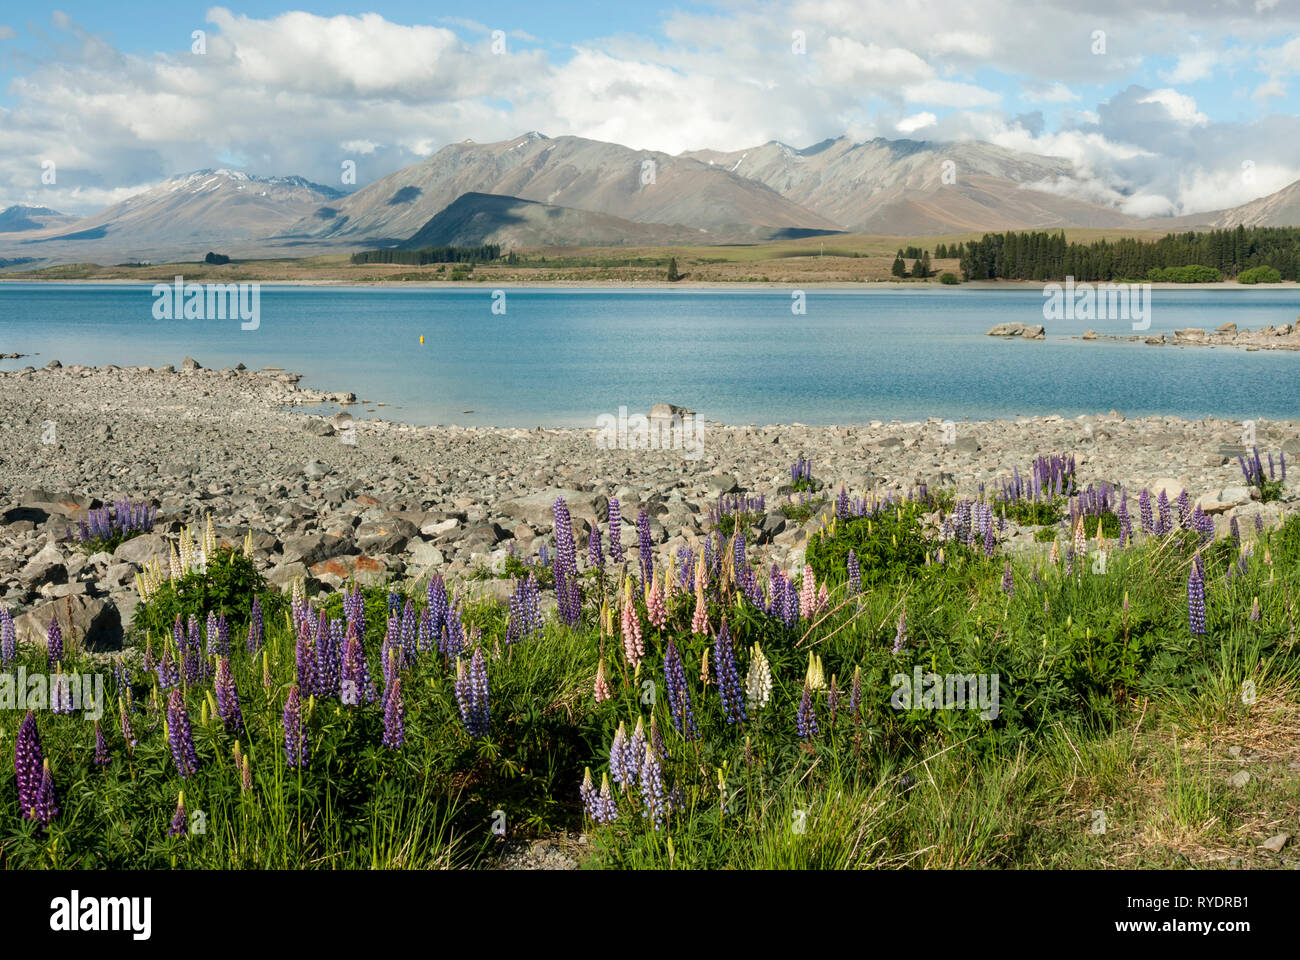 The stunning pale blue Lake Tekapo, New Zealand, with mountains in the background and colourful lupins in the foreground. Sunny day, fluffy clouds. Stock Photo